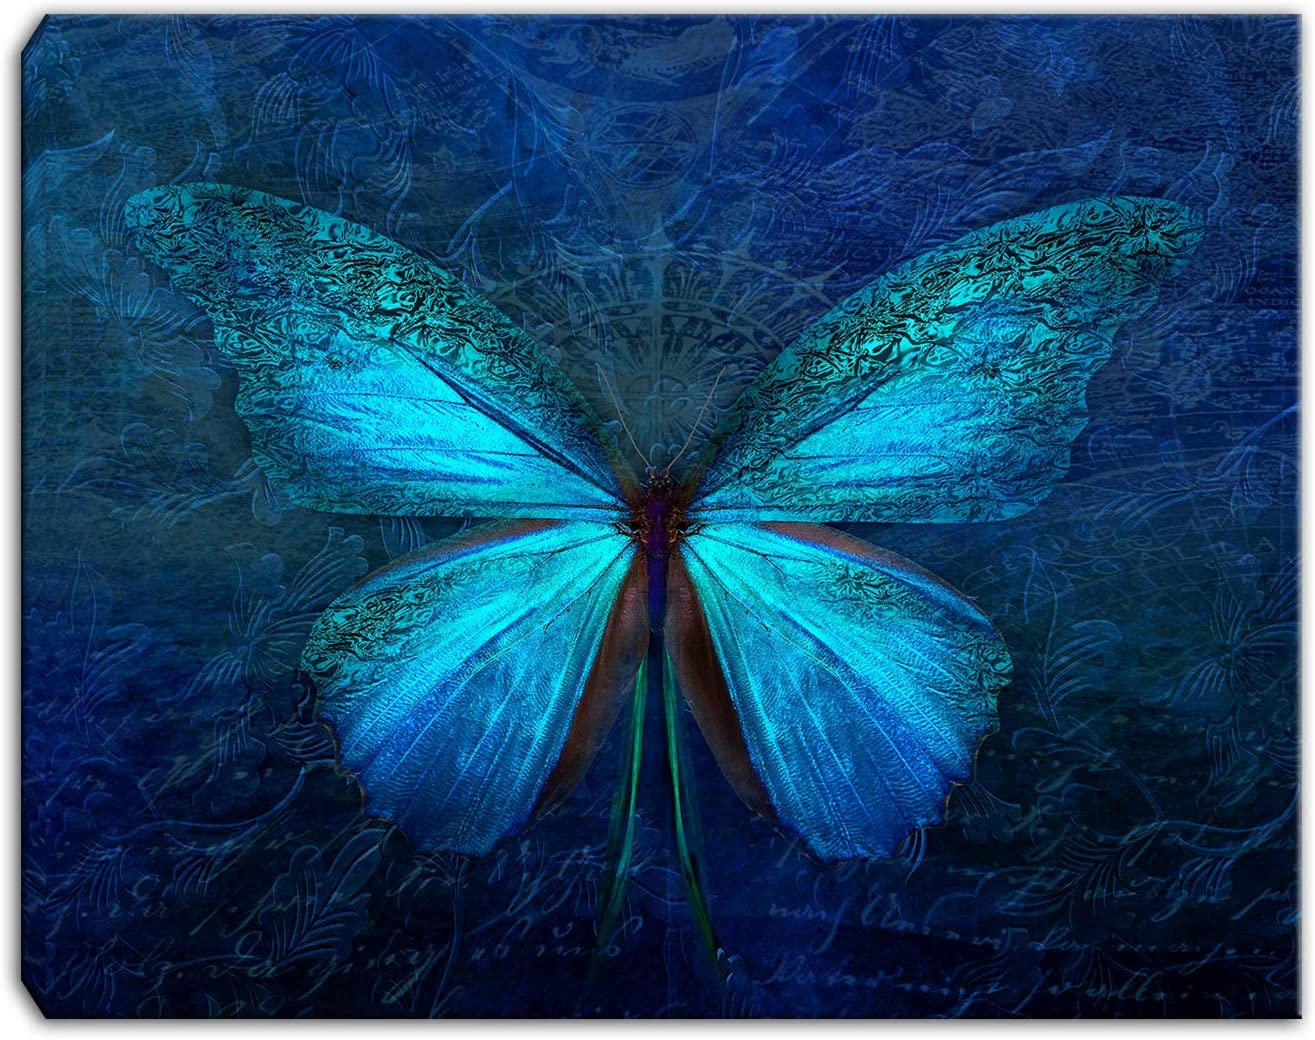 Artsbay Butterfly Canvas Wall Decor Vintage Turquoise Butterfly in Flower Background Blue Wall Art Framed Modern Butterfly Pictures Painting Artwork Home Art for Girl Room Bedroom Decor Ready to Hang